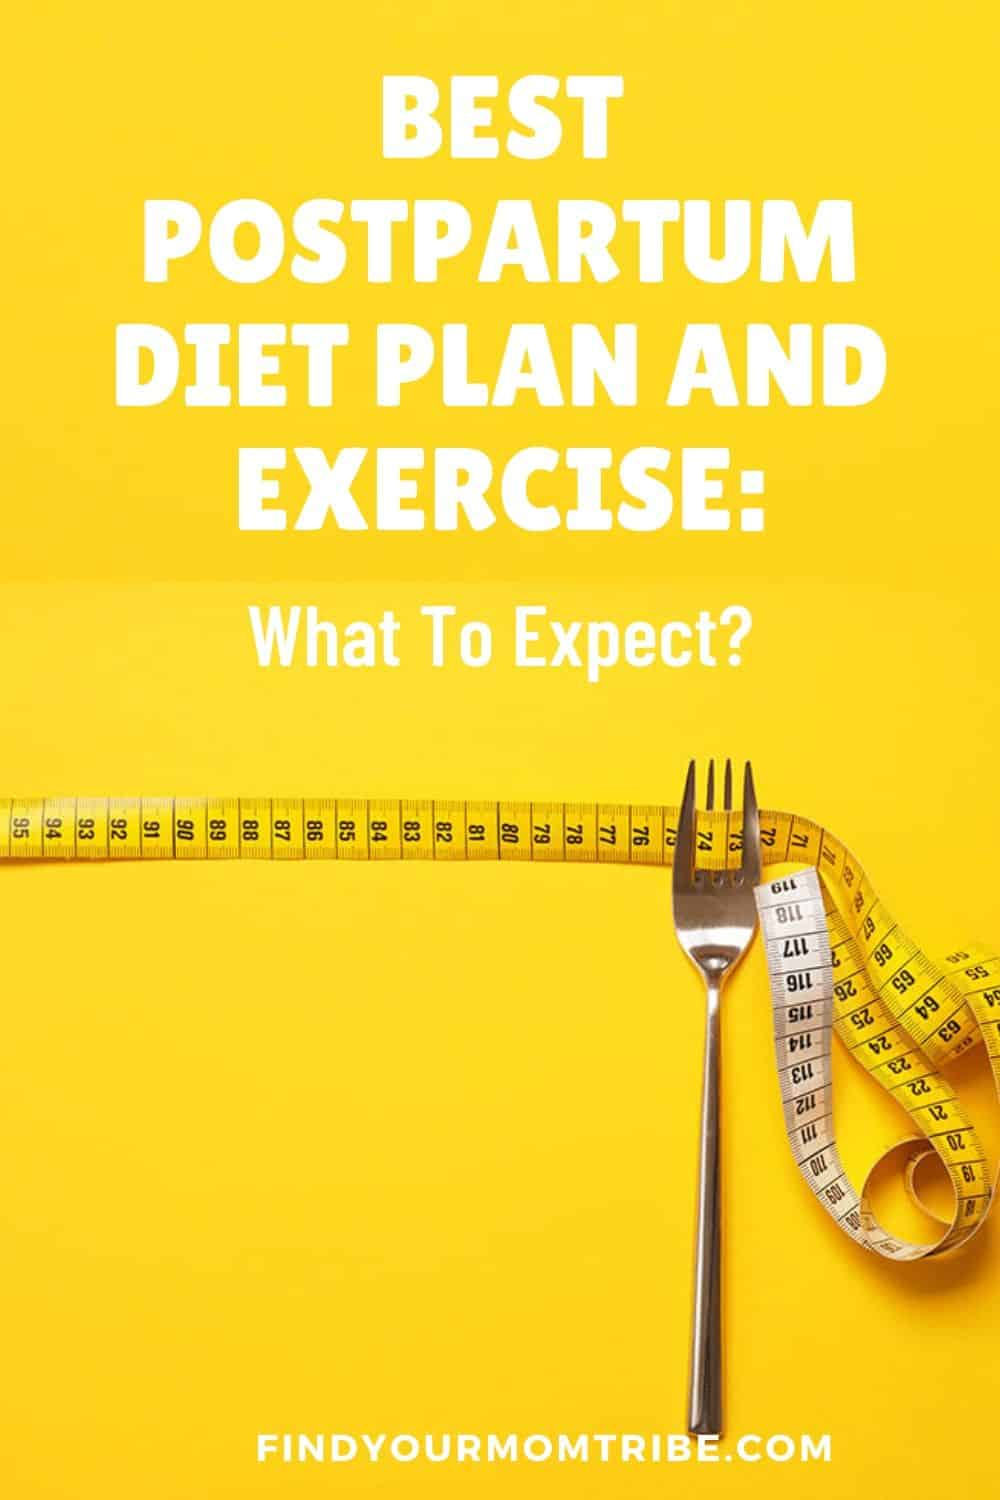 Best Postpartum Diet Plan And Exercise: What To Expect?